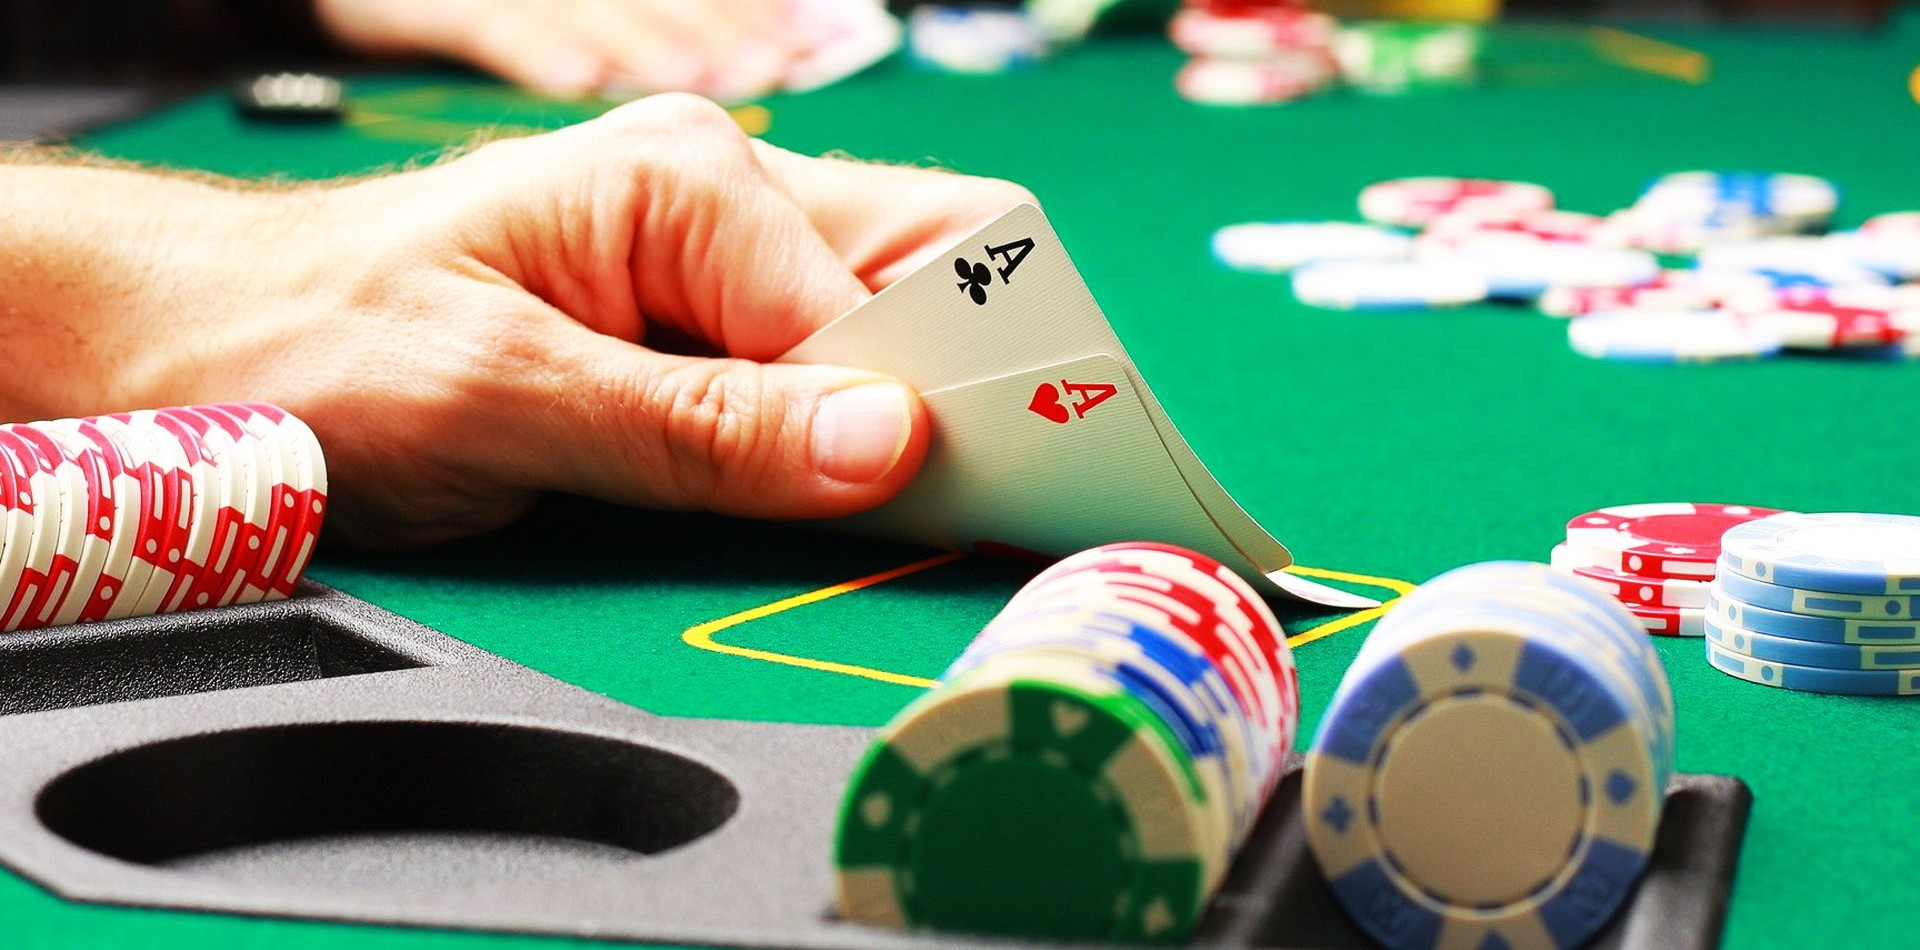 Some online casinos are way more fun